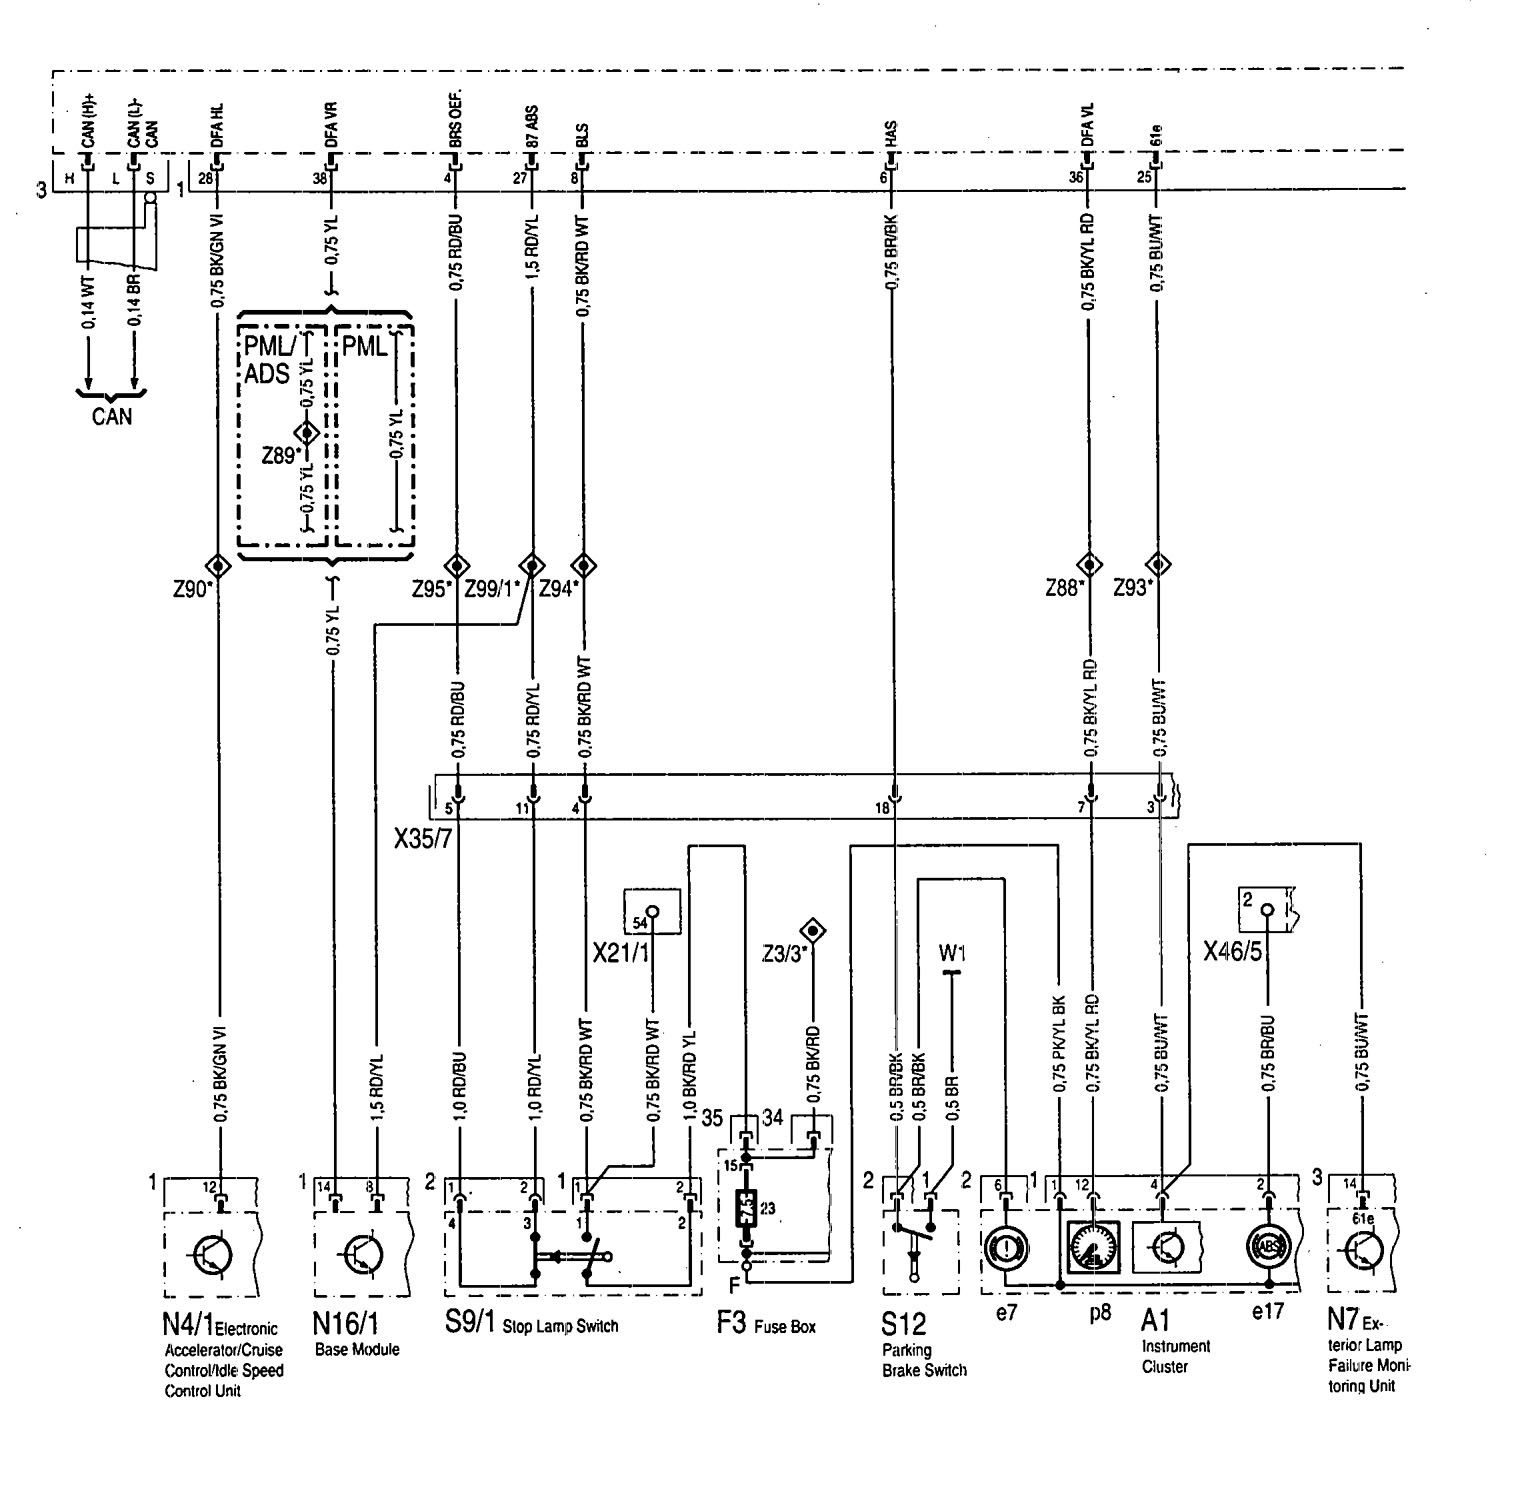 Mercedes Benz 300se 1992 Wiring Diagrams Abs Carknowledge Citroen C3 Diagram Part 1